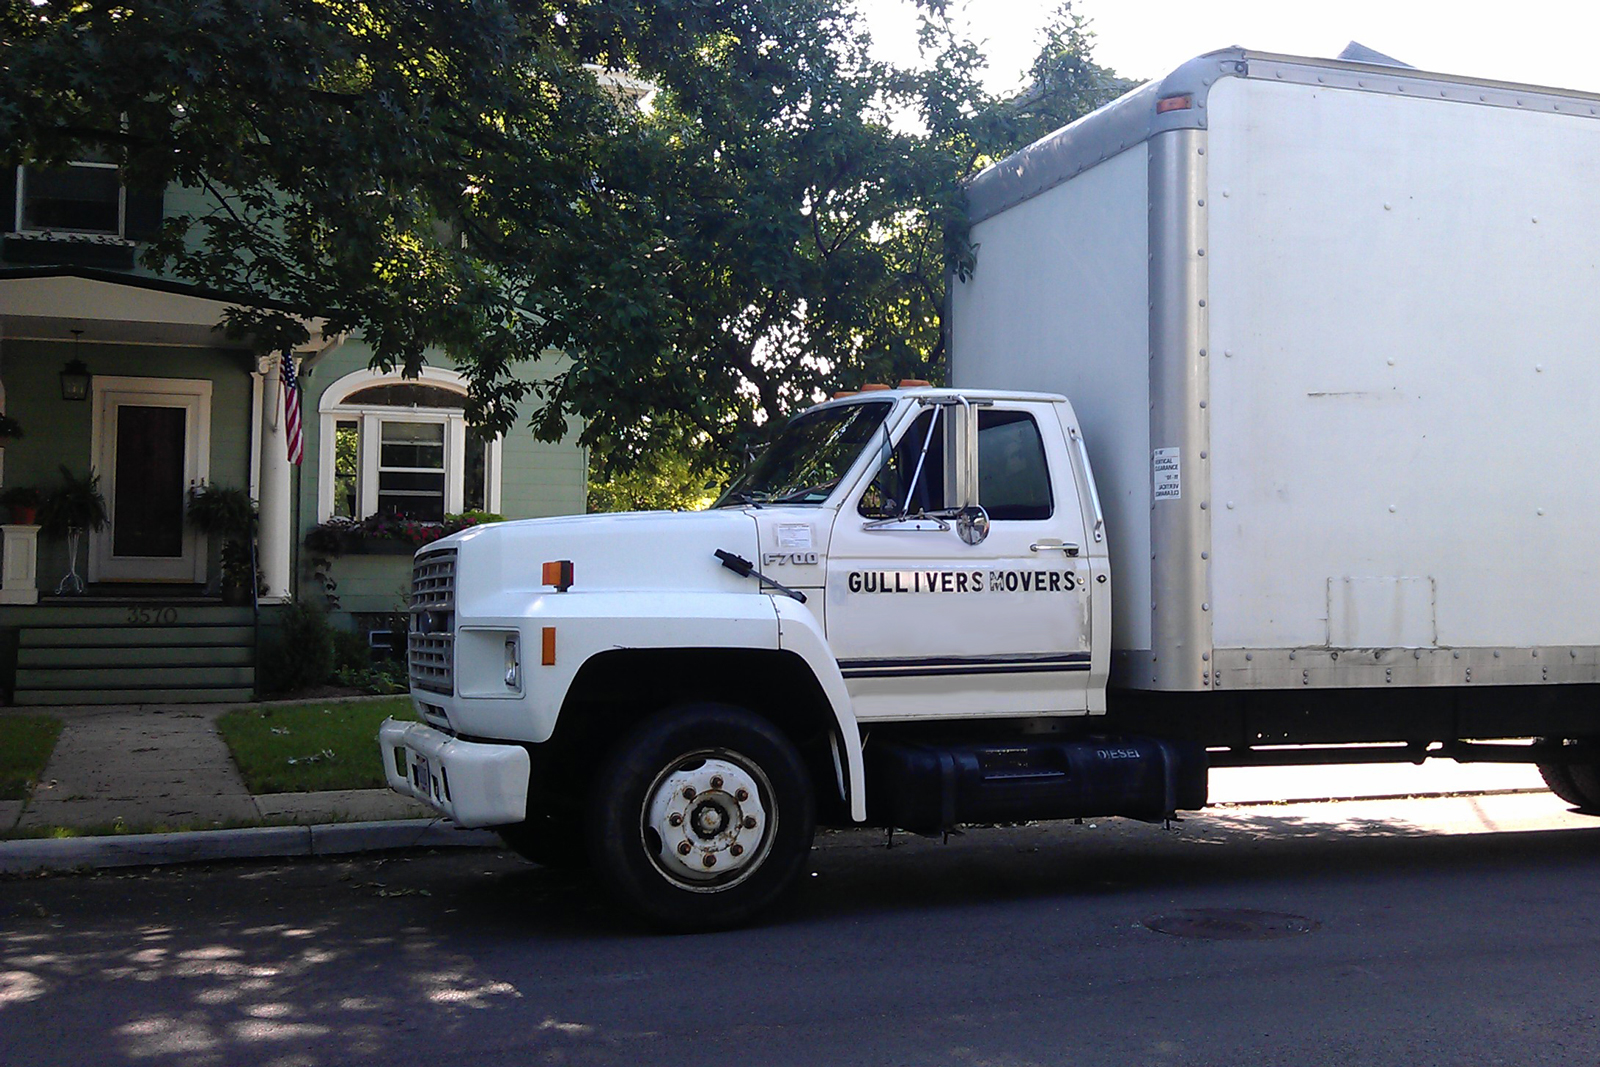 A moving van in front of a house